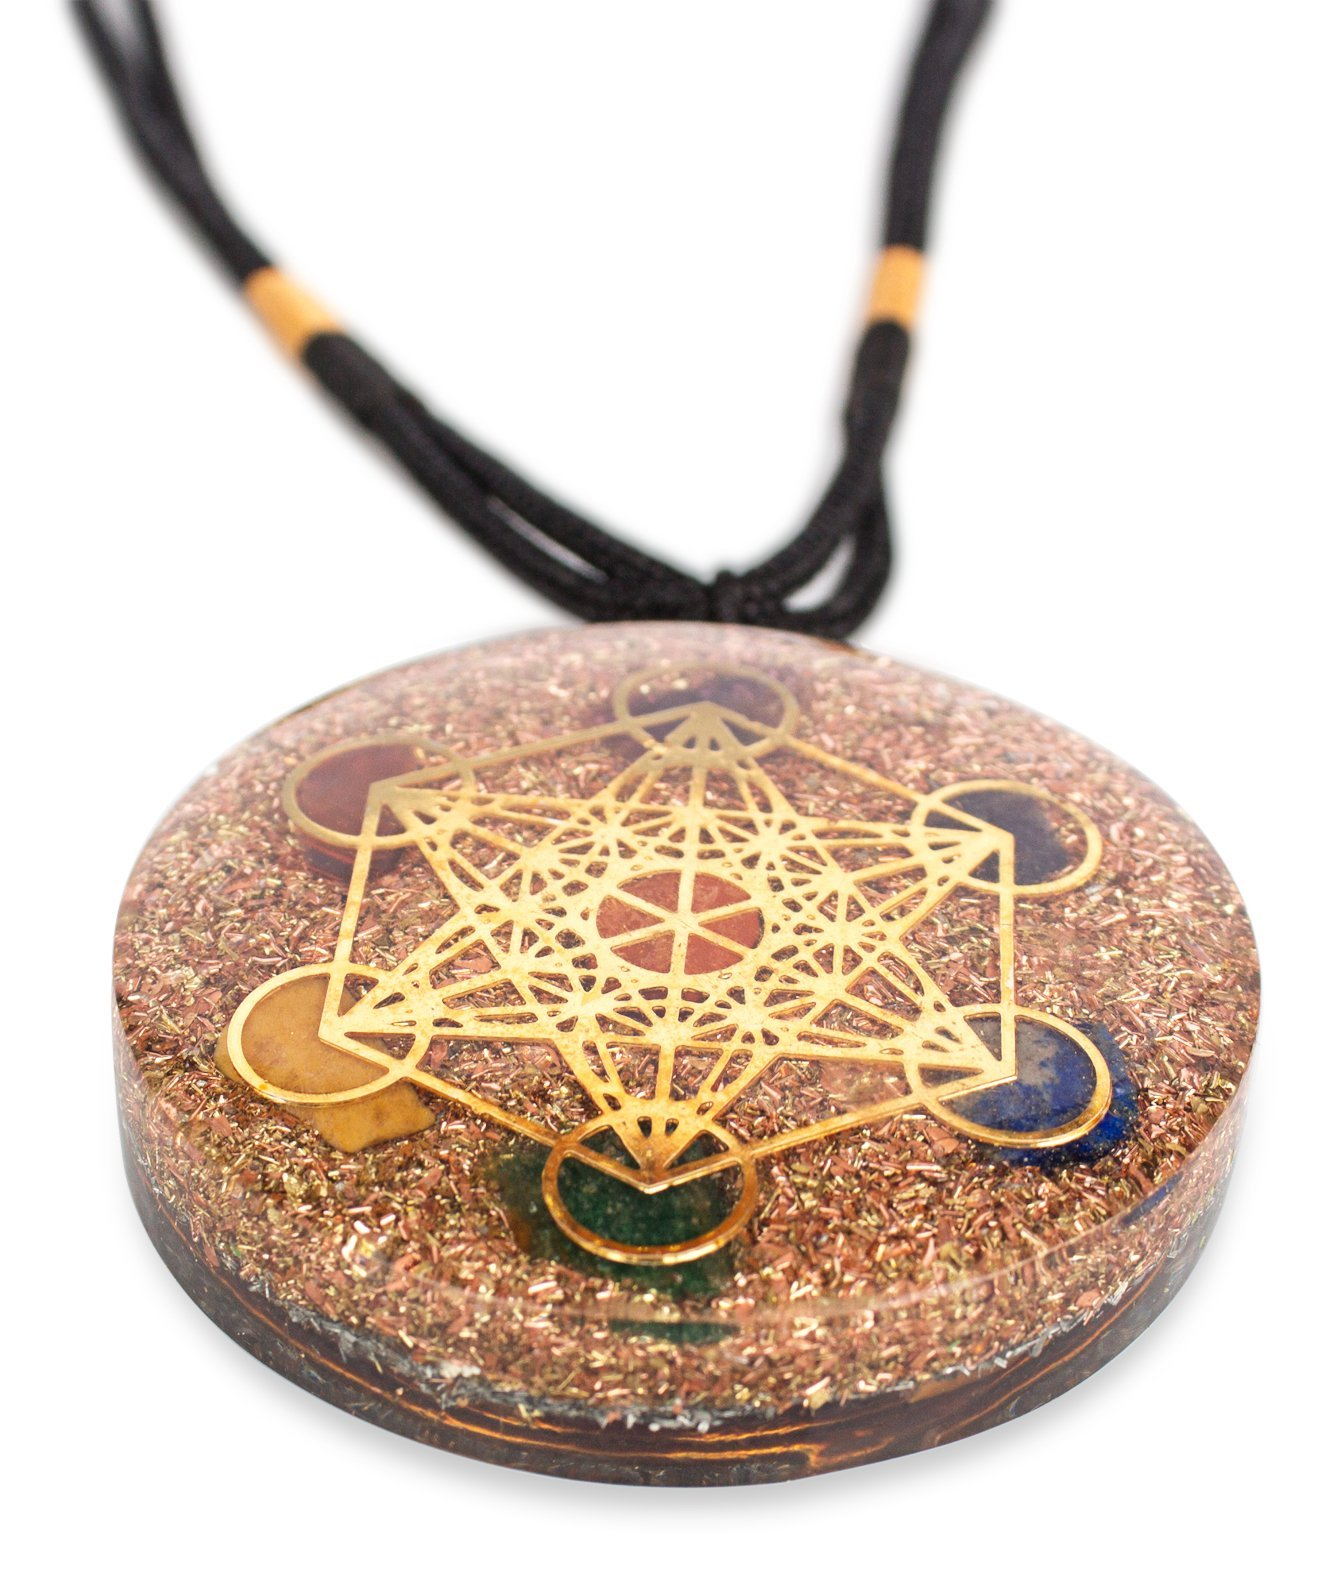 Reversible Metatron Cube Orgonite Mixed Chakra Orgone Pendant – Revitalization and relaxation Chi energy enhancing Carnelian, Lapis Lazuli, Crystal necklace with Tesla Coil 2 Styles- Unisex